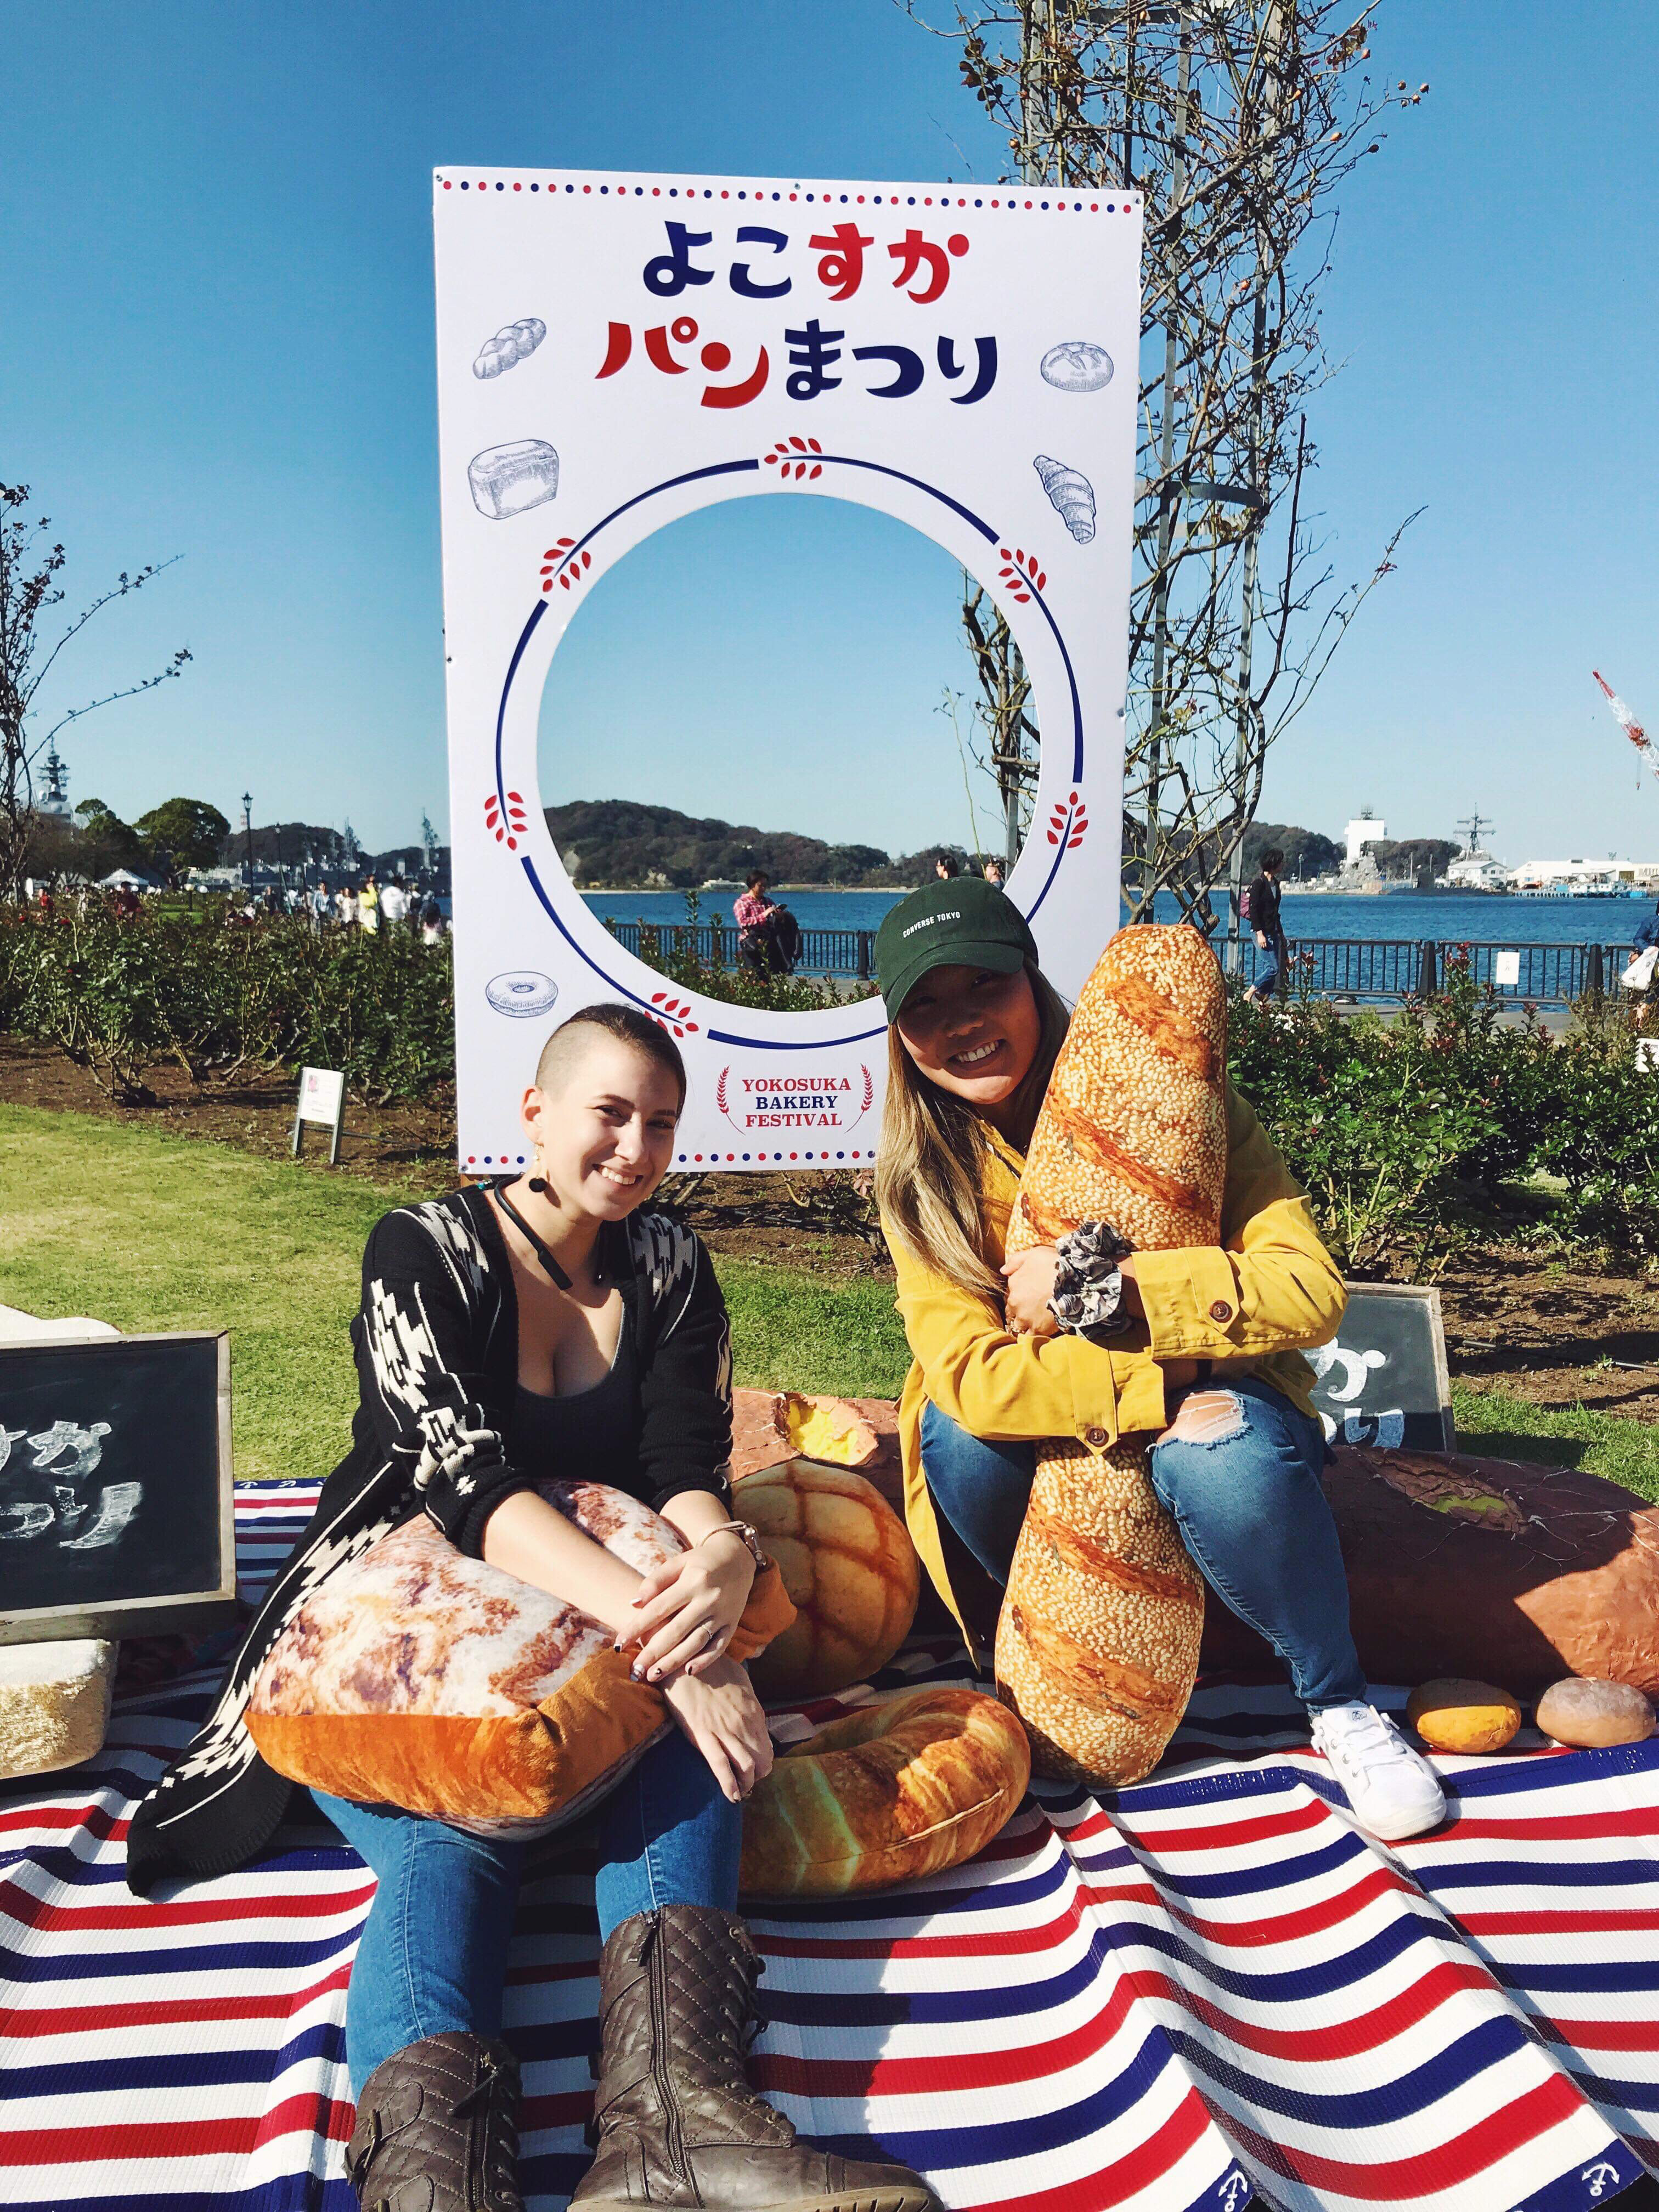 A picture of two women sitting upon a picnic blanket on the grass at the festival grounds